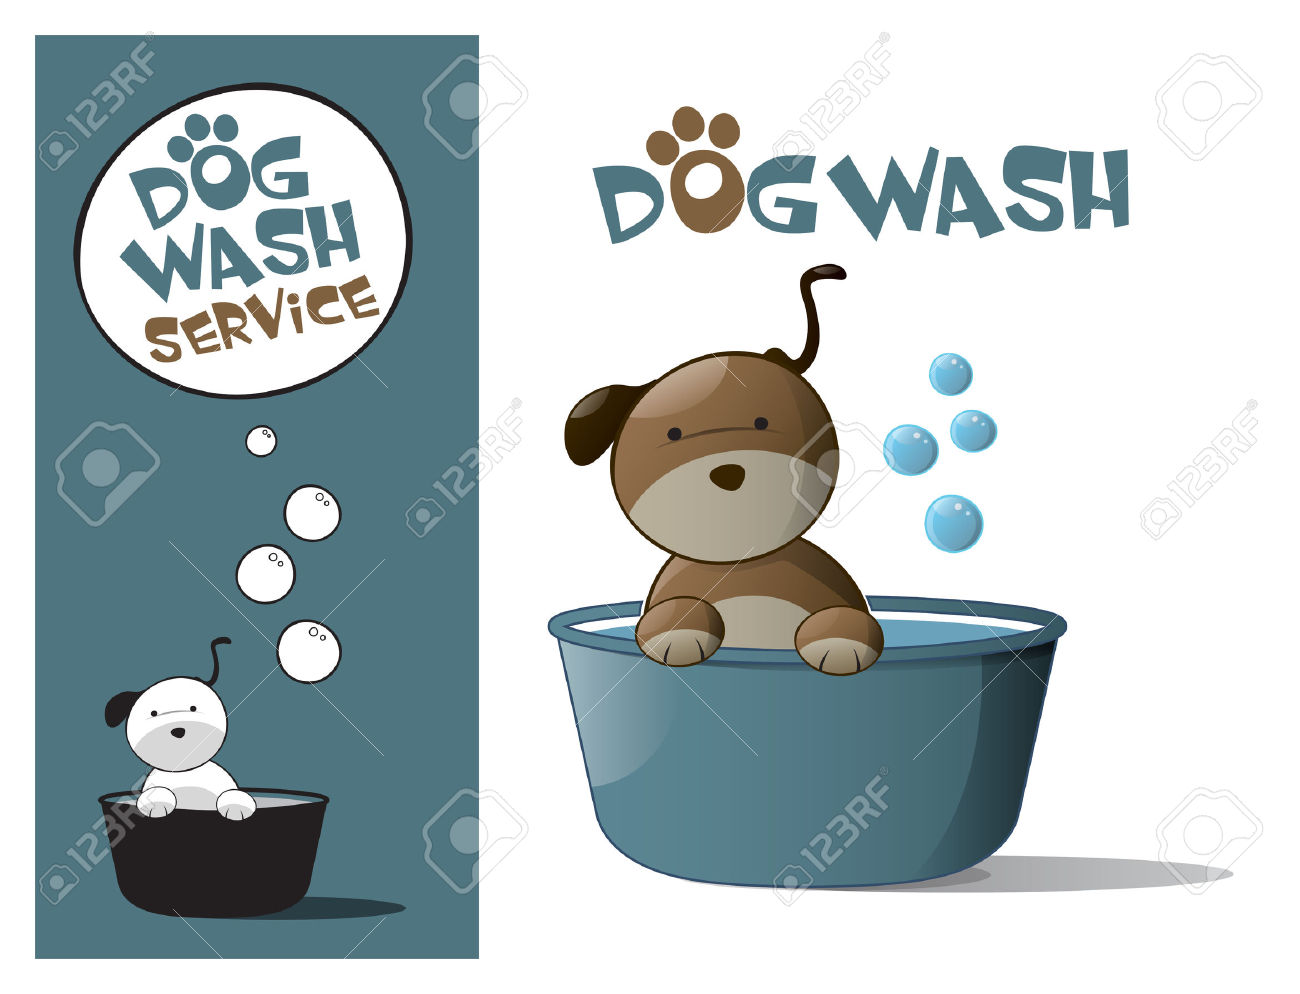 Dog clipart stock graphic royalty free stock 136,042 Dog Stock Vector Illustration And Royalty Free Dog Clipart graphic royalty free stock